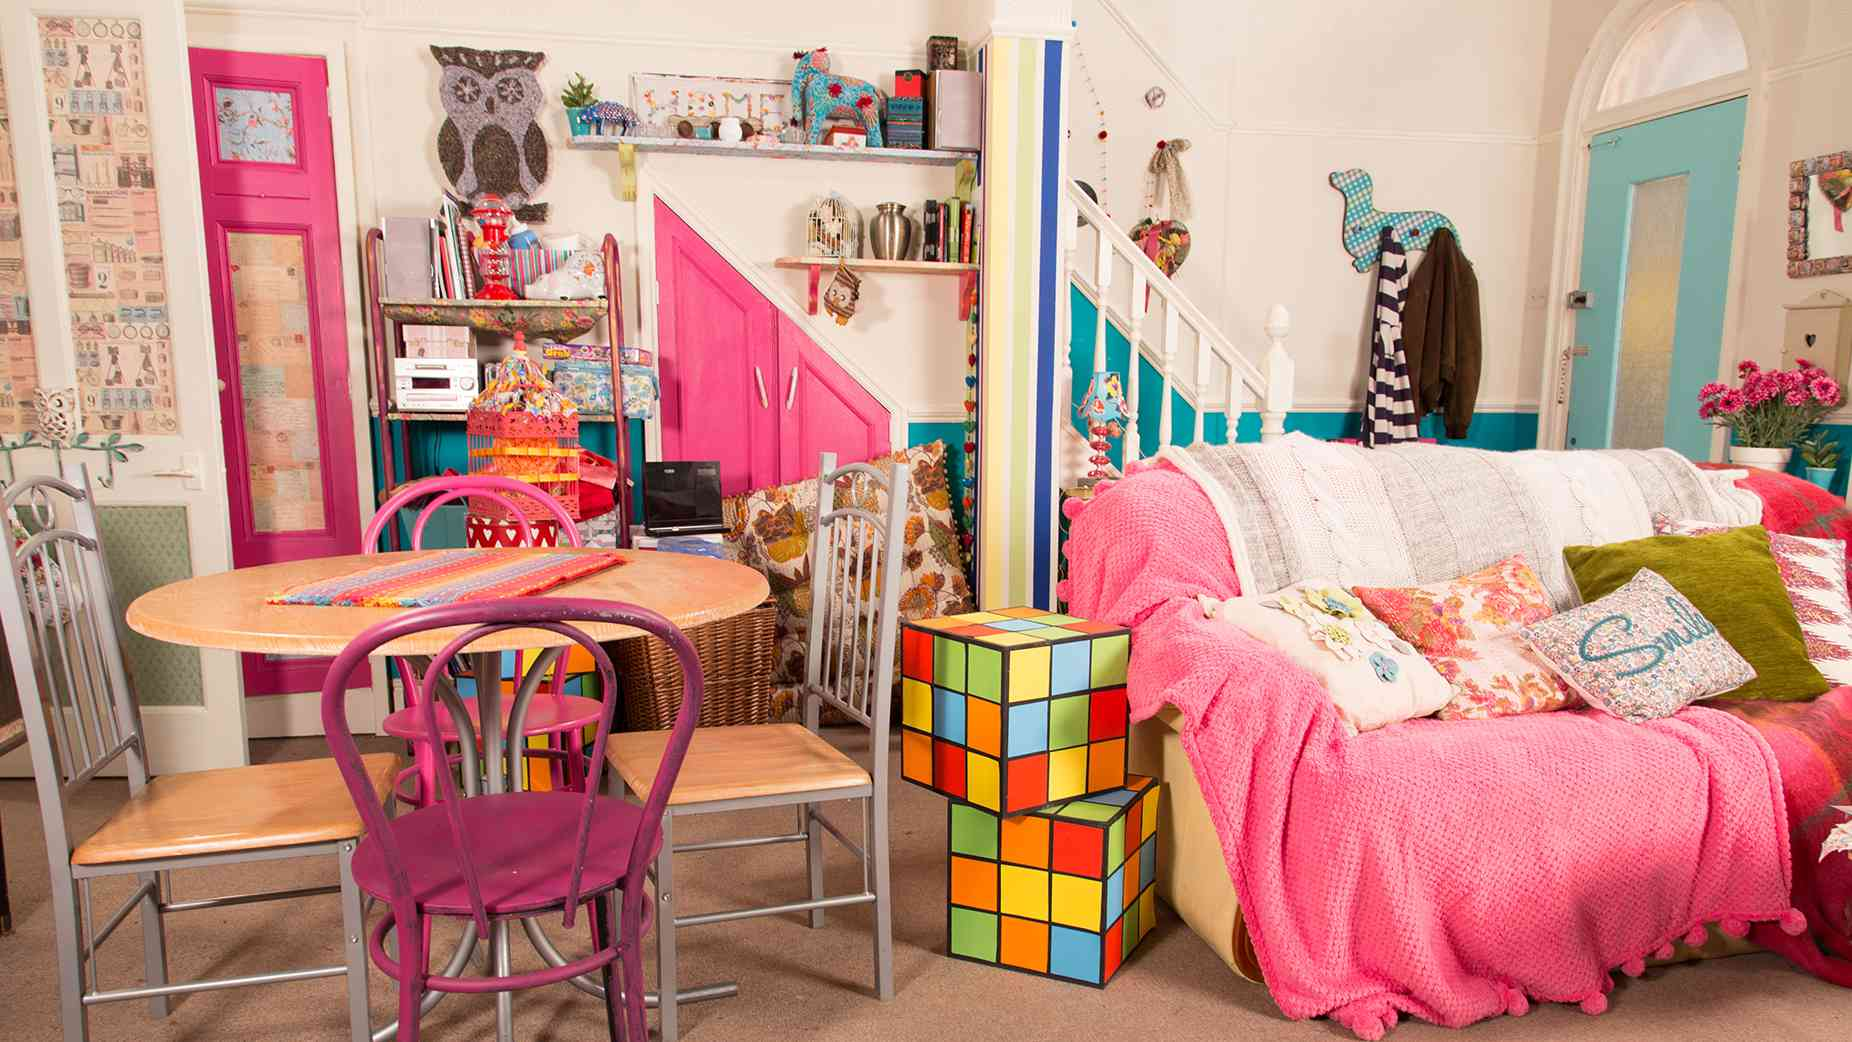 Chesney's mismatched home in Coronation Street